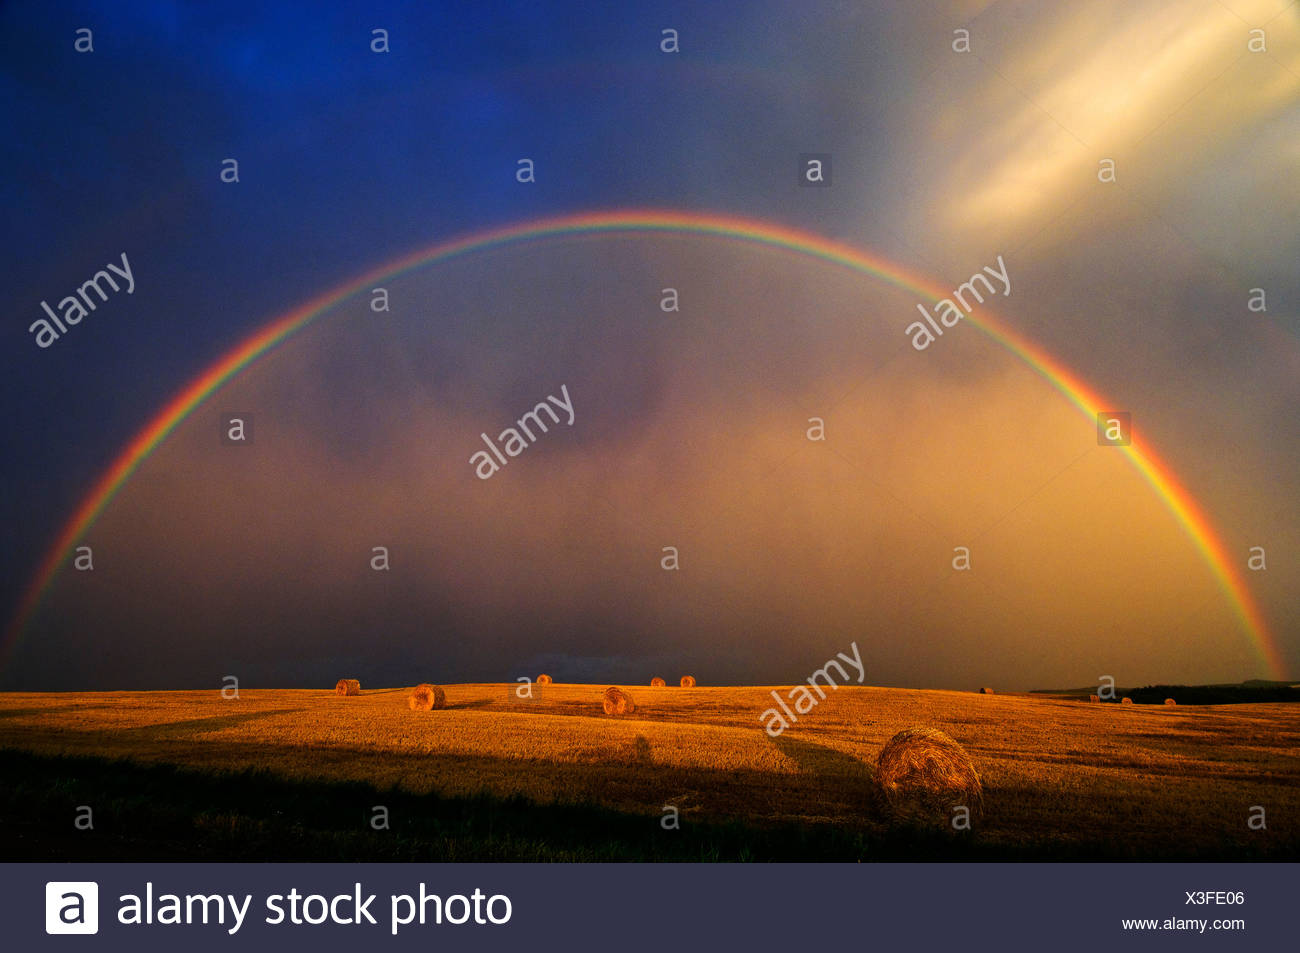 Rainbow and bales after prairie storm at sunset near Cypress River, Manitoba, Canada. - Stock Image